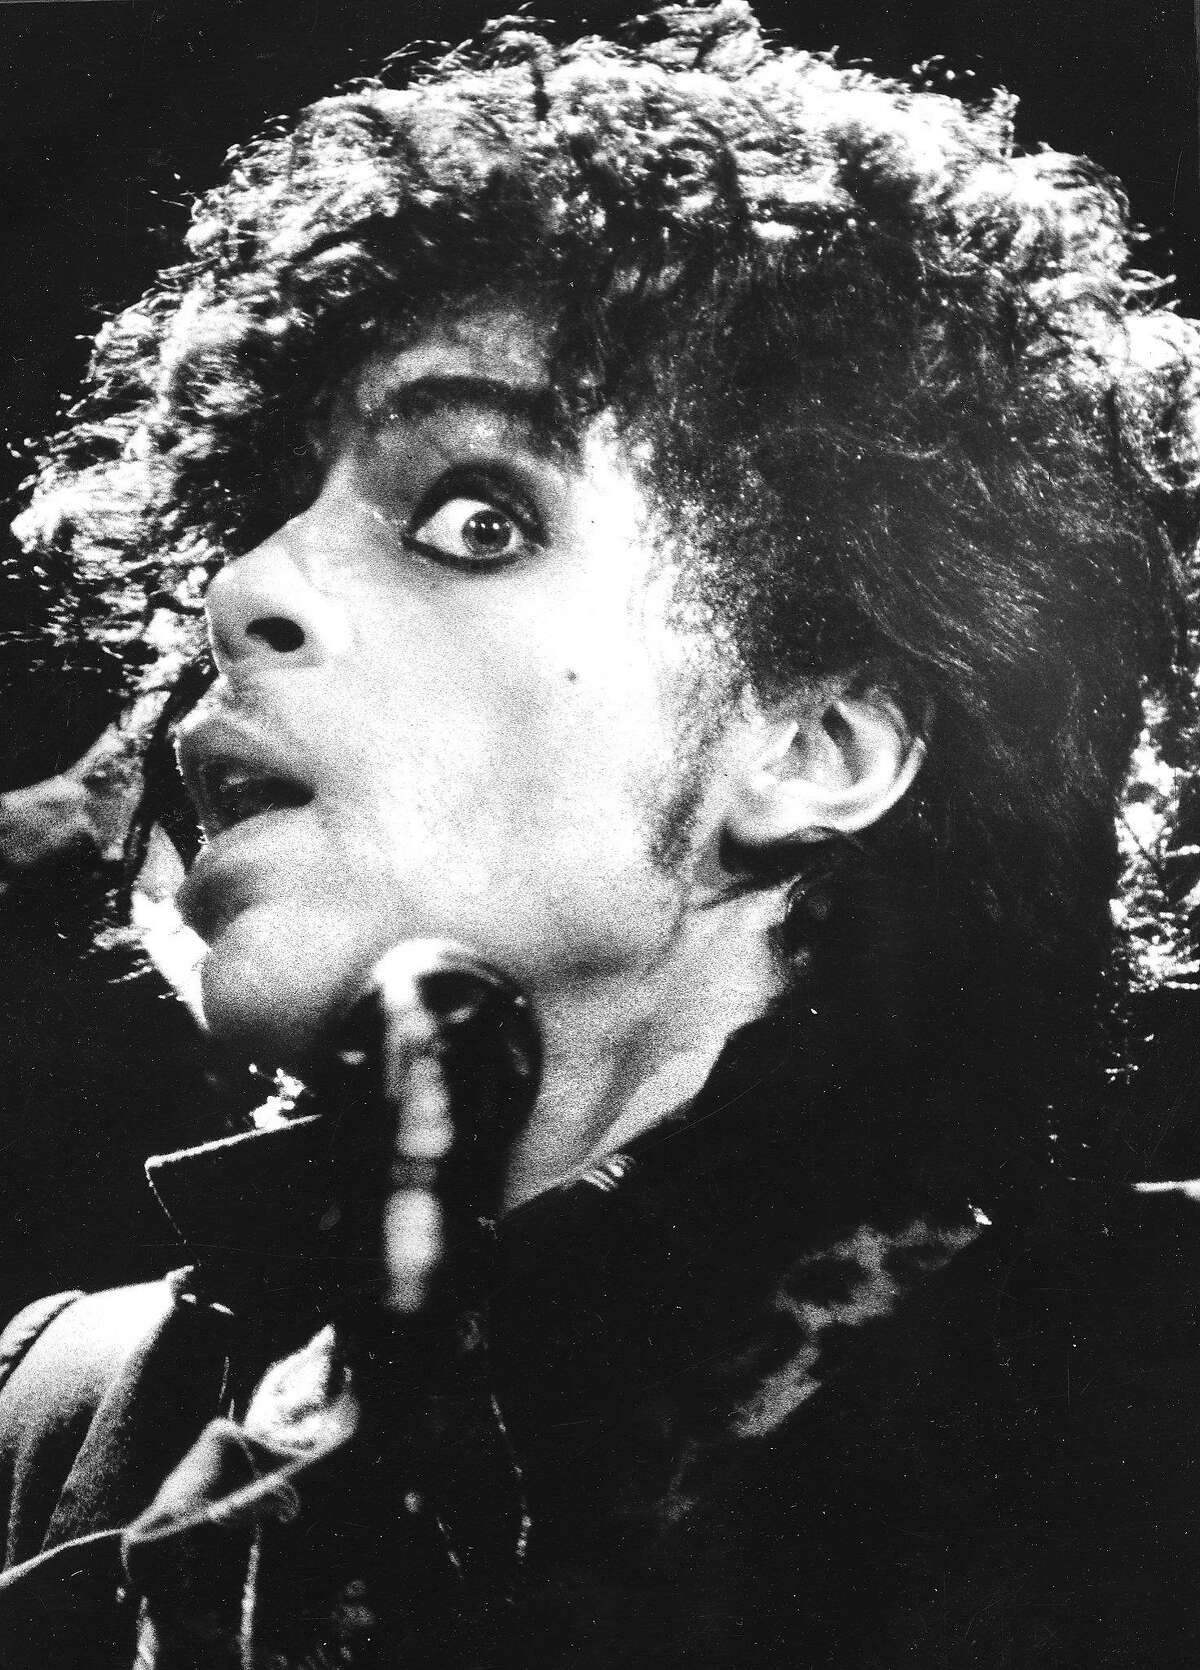 Prince performing in 1983.